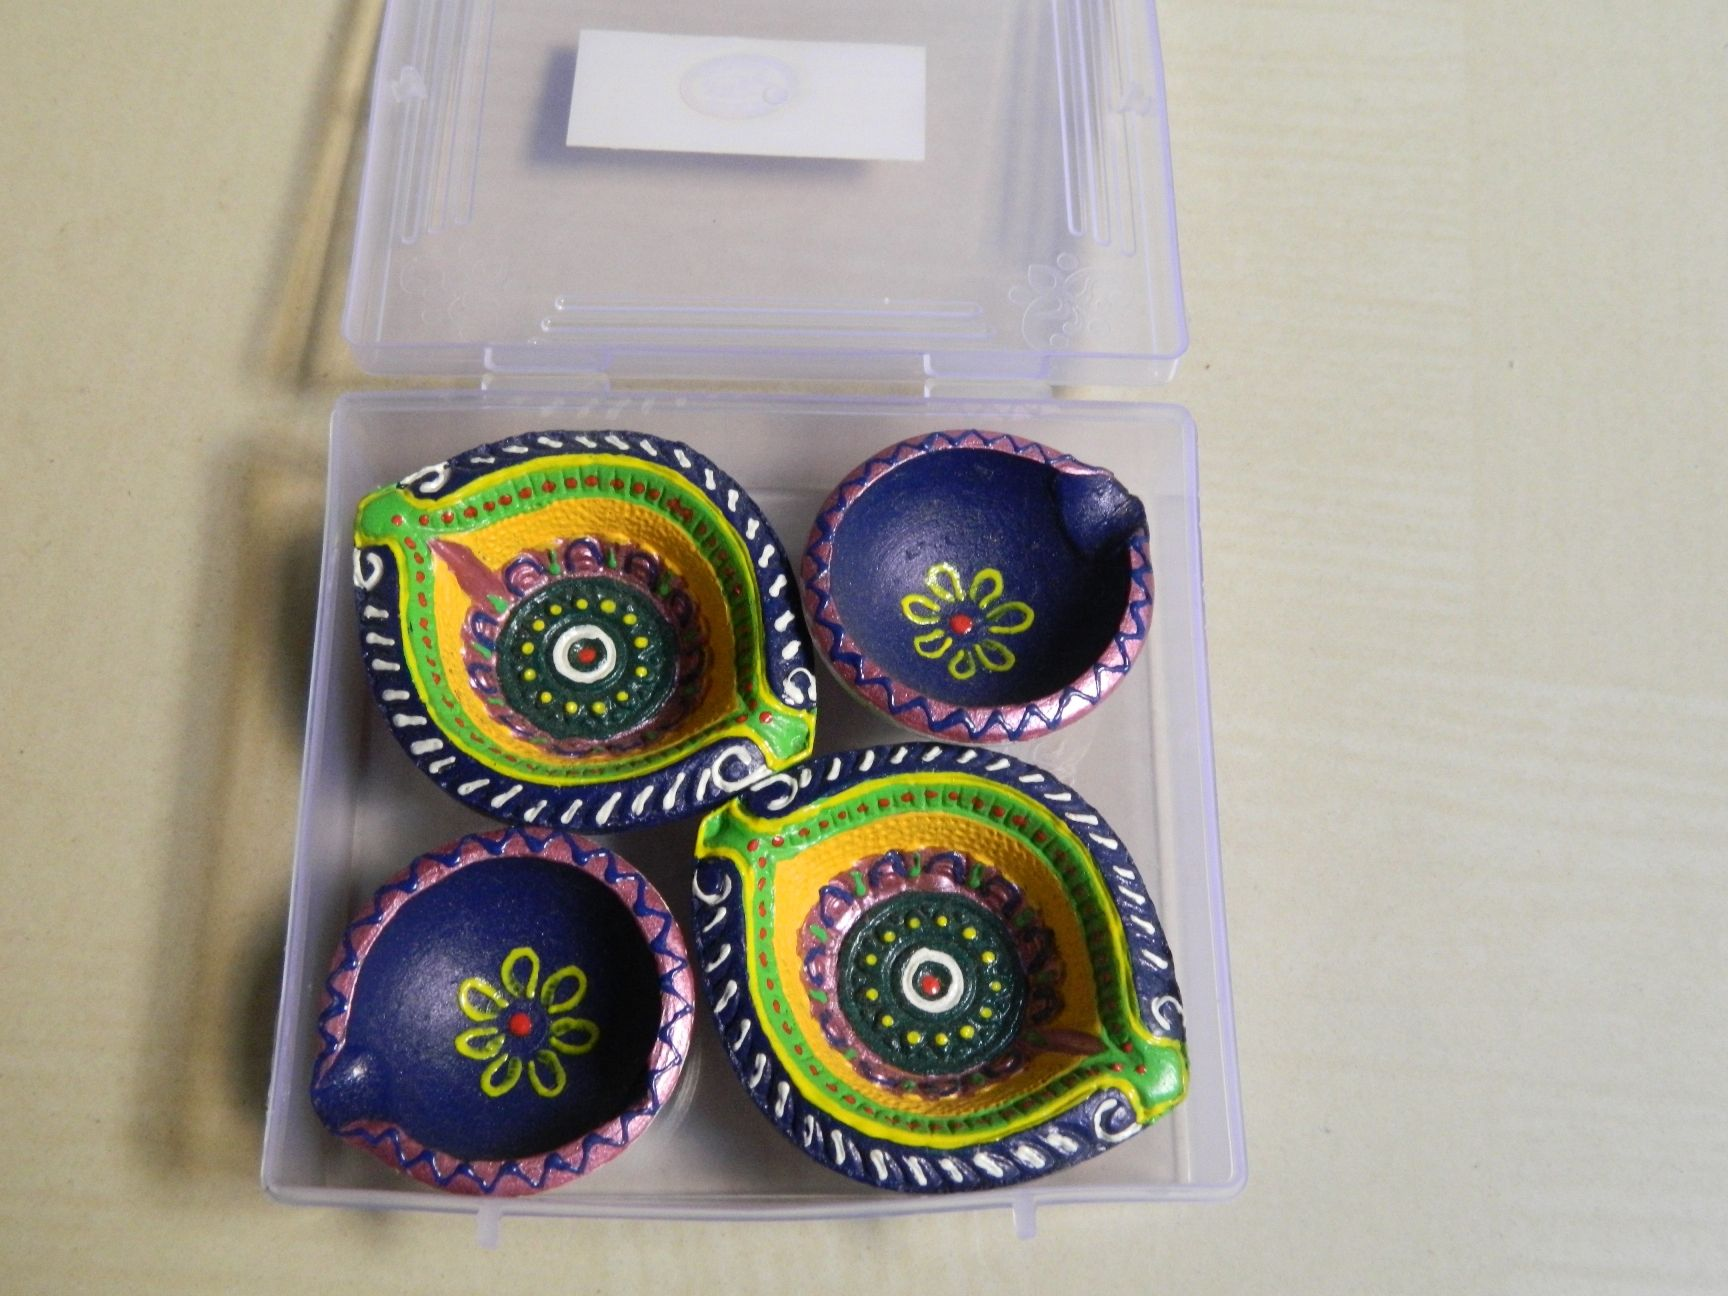 Diwali Decoration Ideas And Crafts Diwali Diya At Craftshopsindia Indian Handicrafts